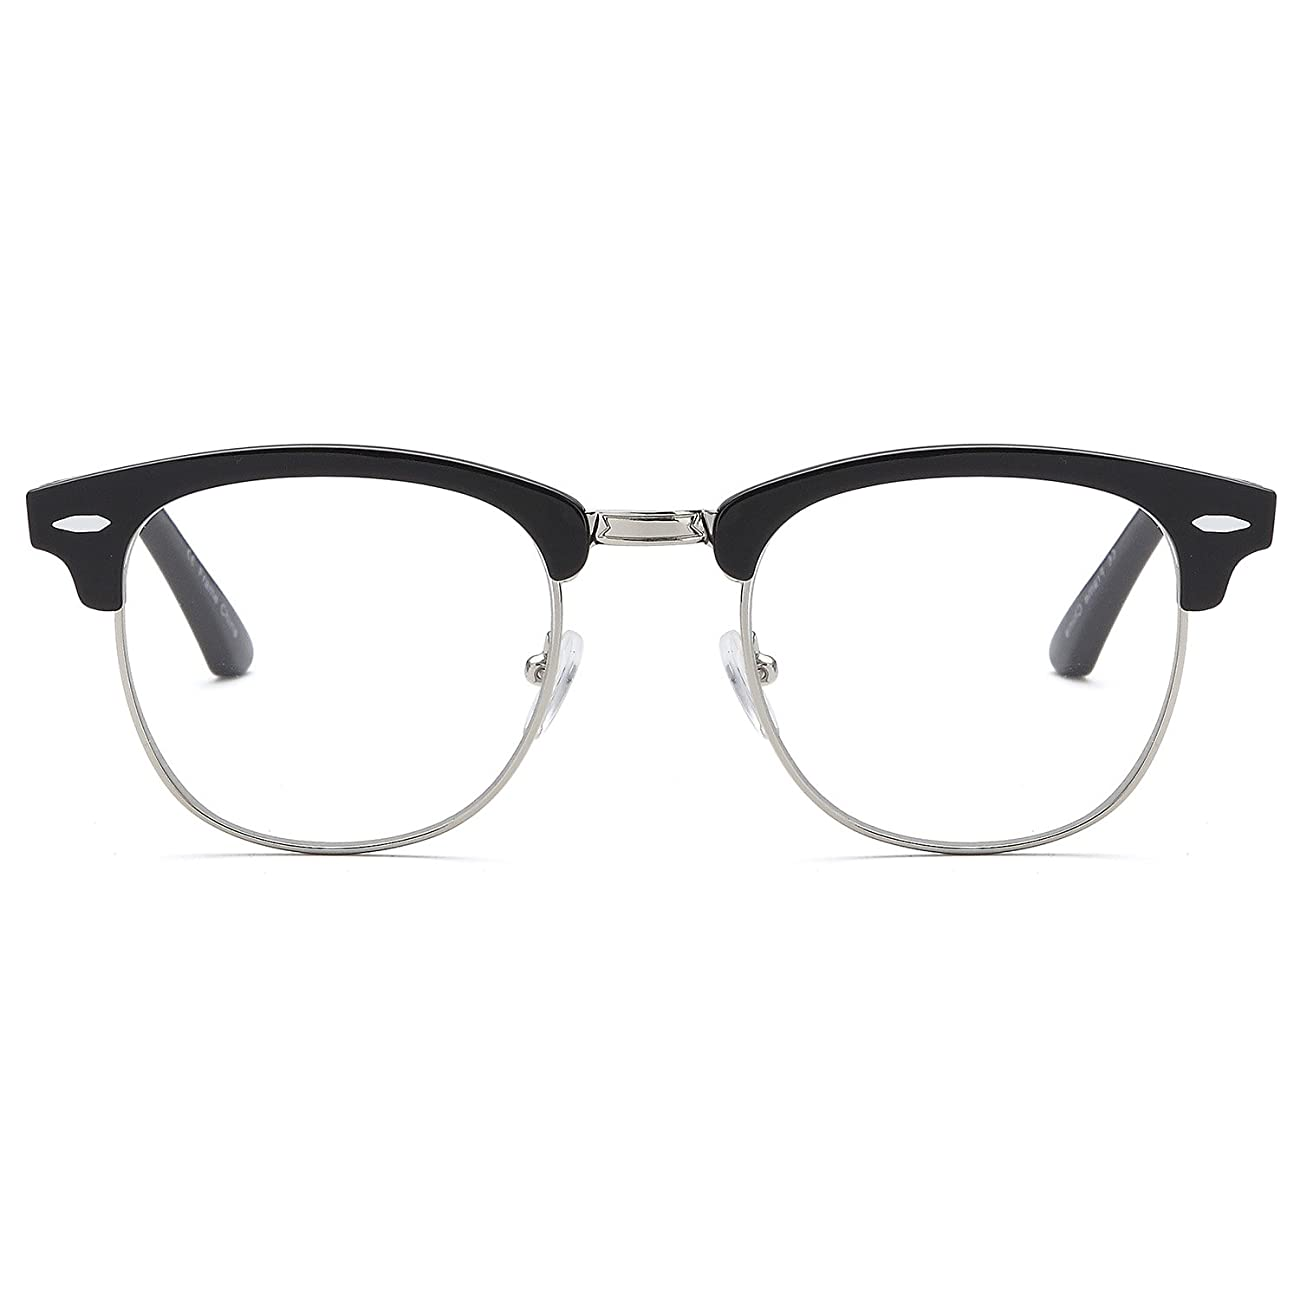 GAMMA RAY READERS Men's Vintage Readers Quality Reading Glasses for Men 2